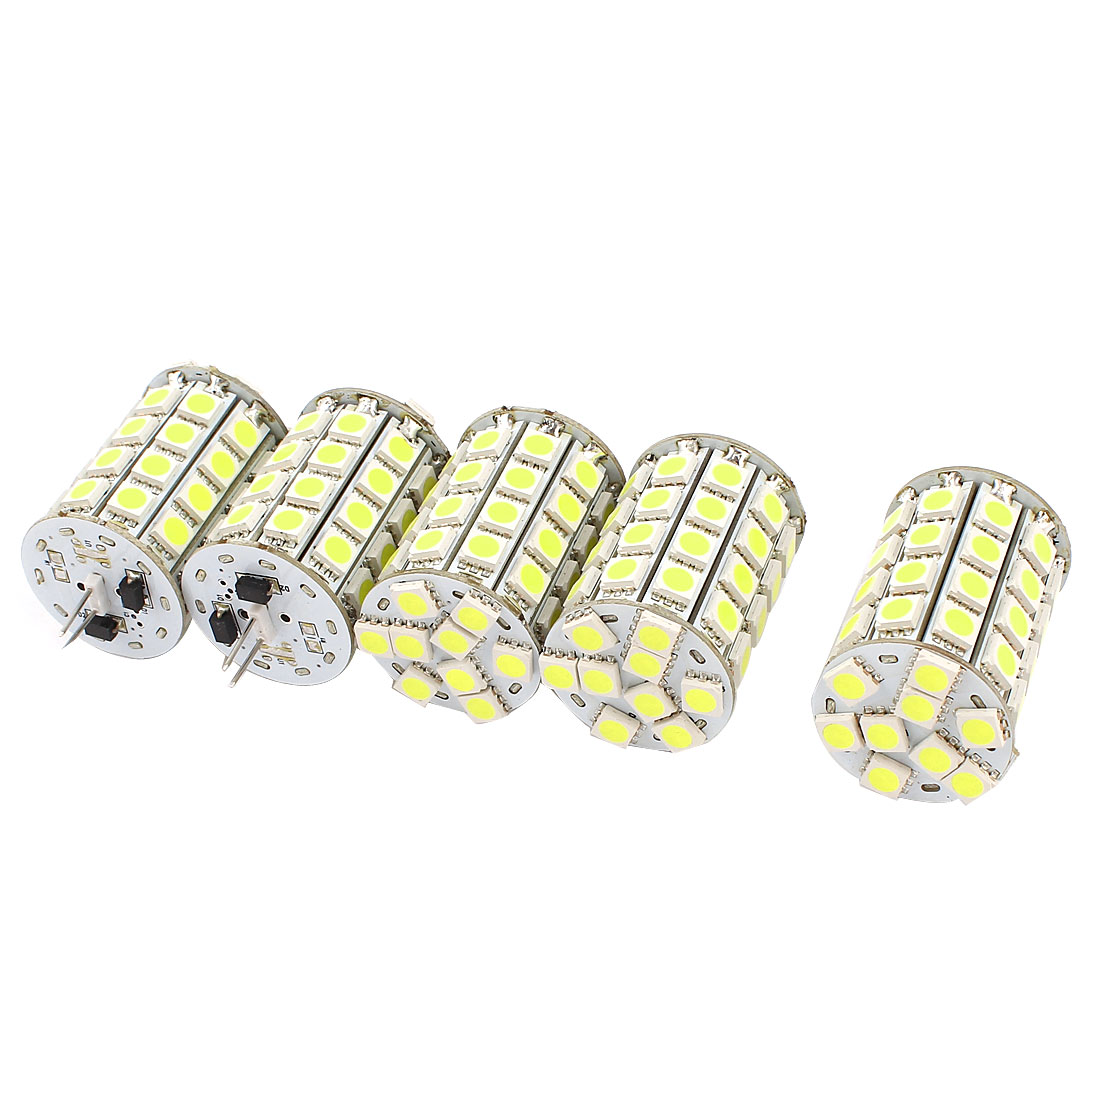 5 x 400-420LM Energy Saving G4 5050 SMD 49 LED Light Bulb Lamp White